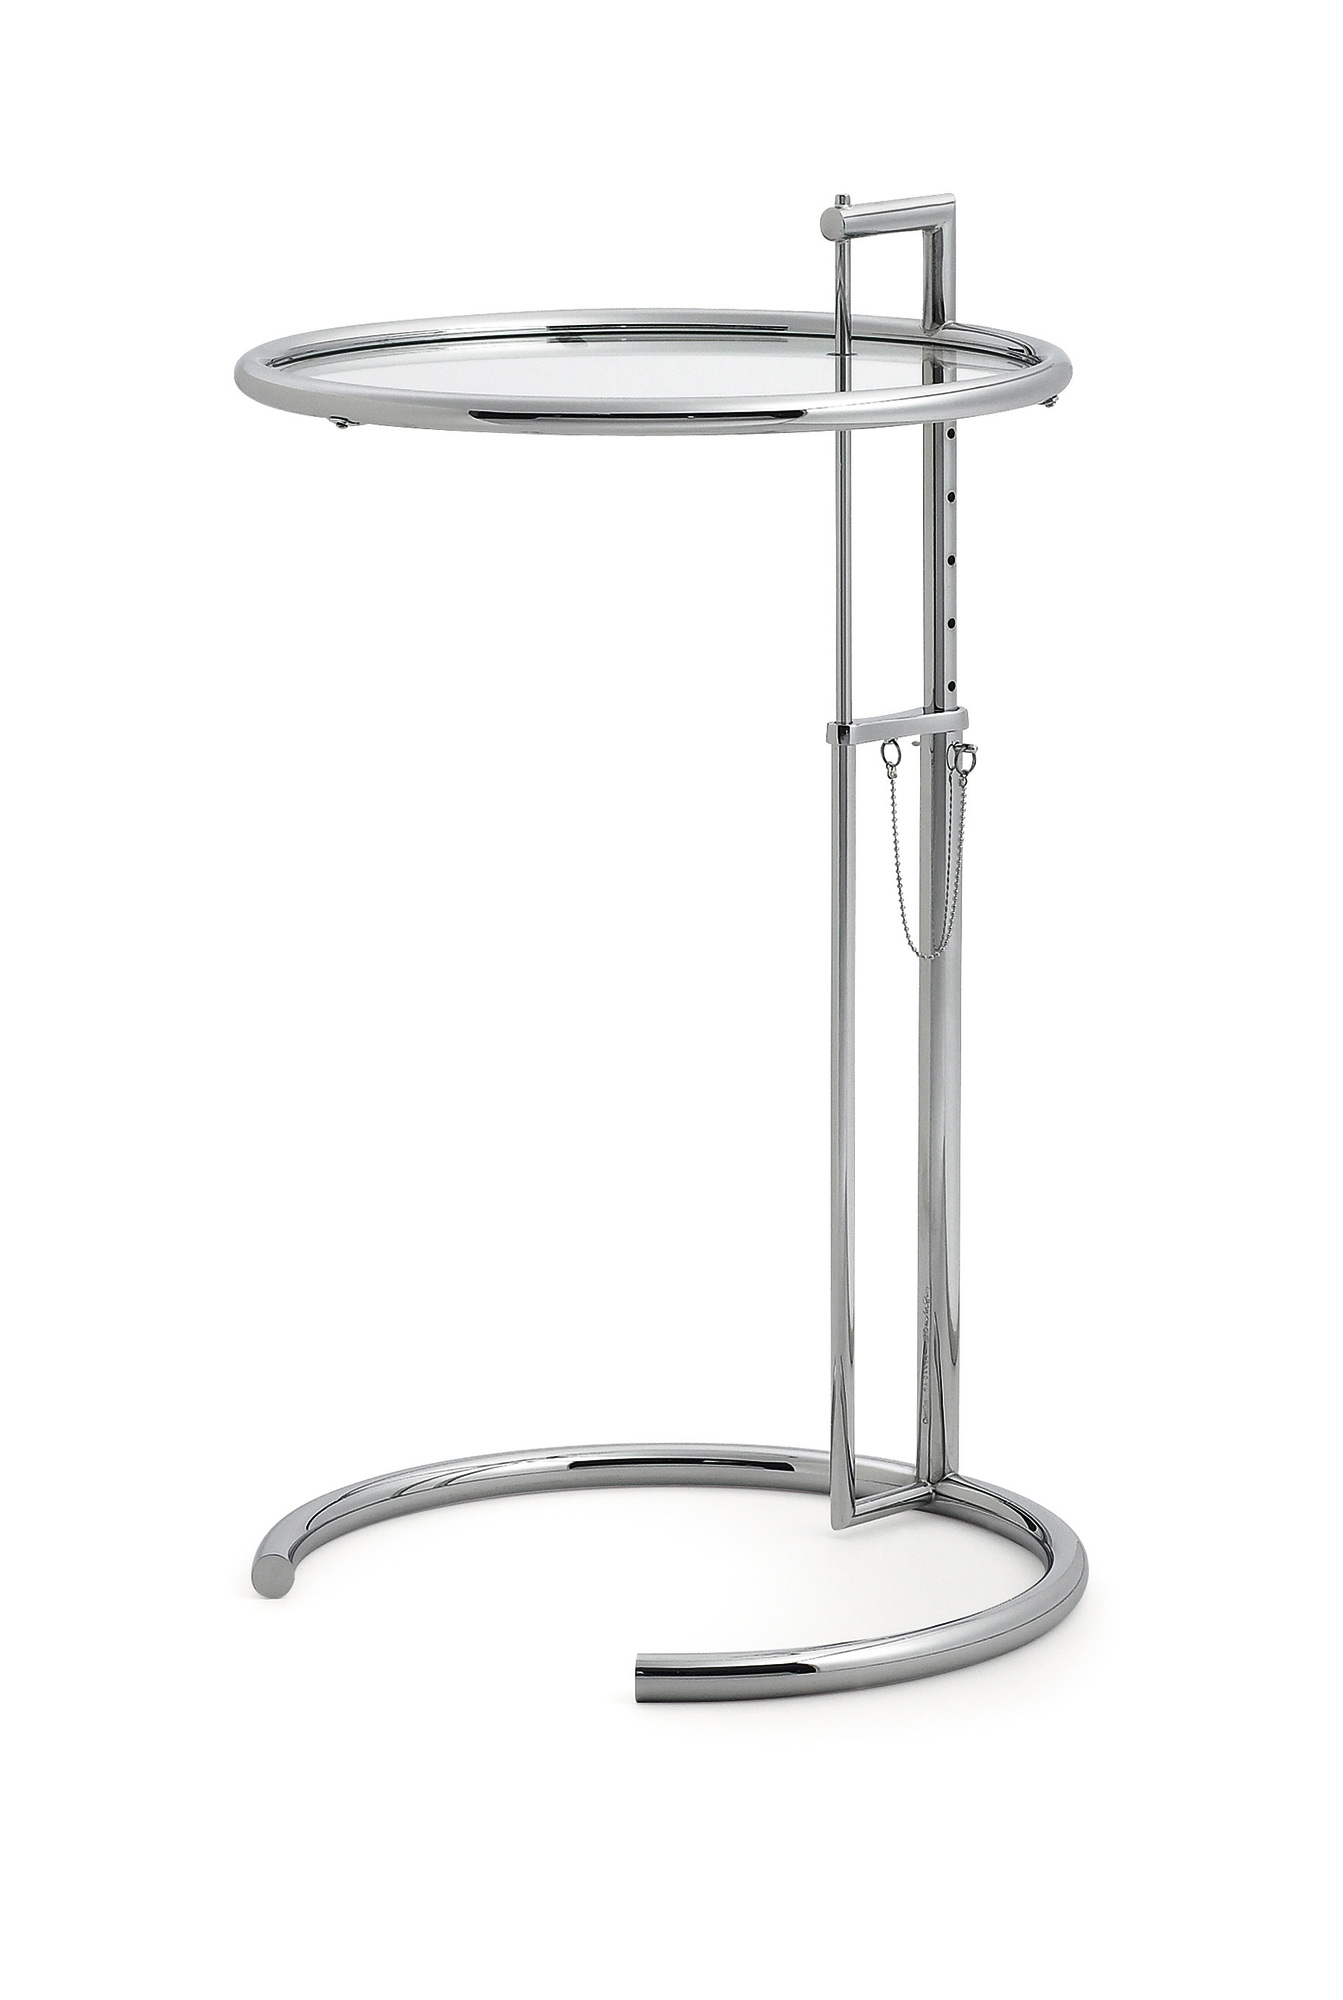 Adjustable Table E 1027 Beistelltisch ClassiCon